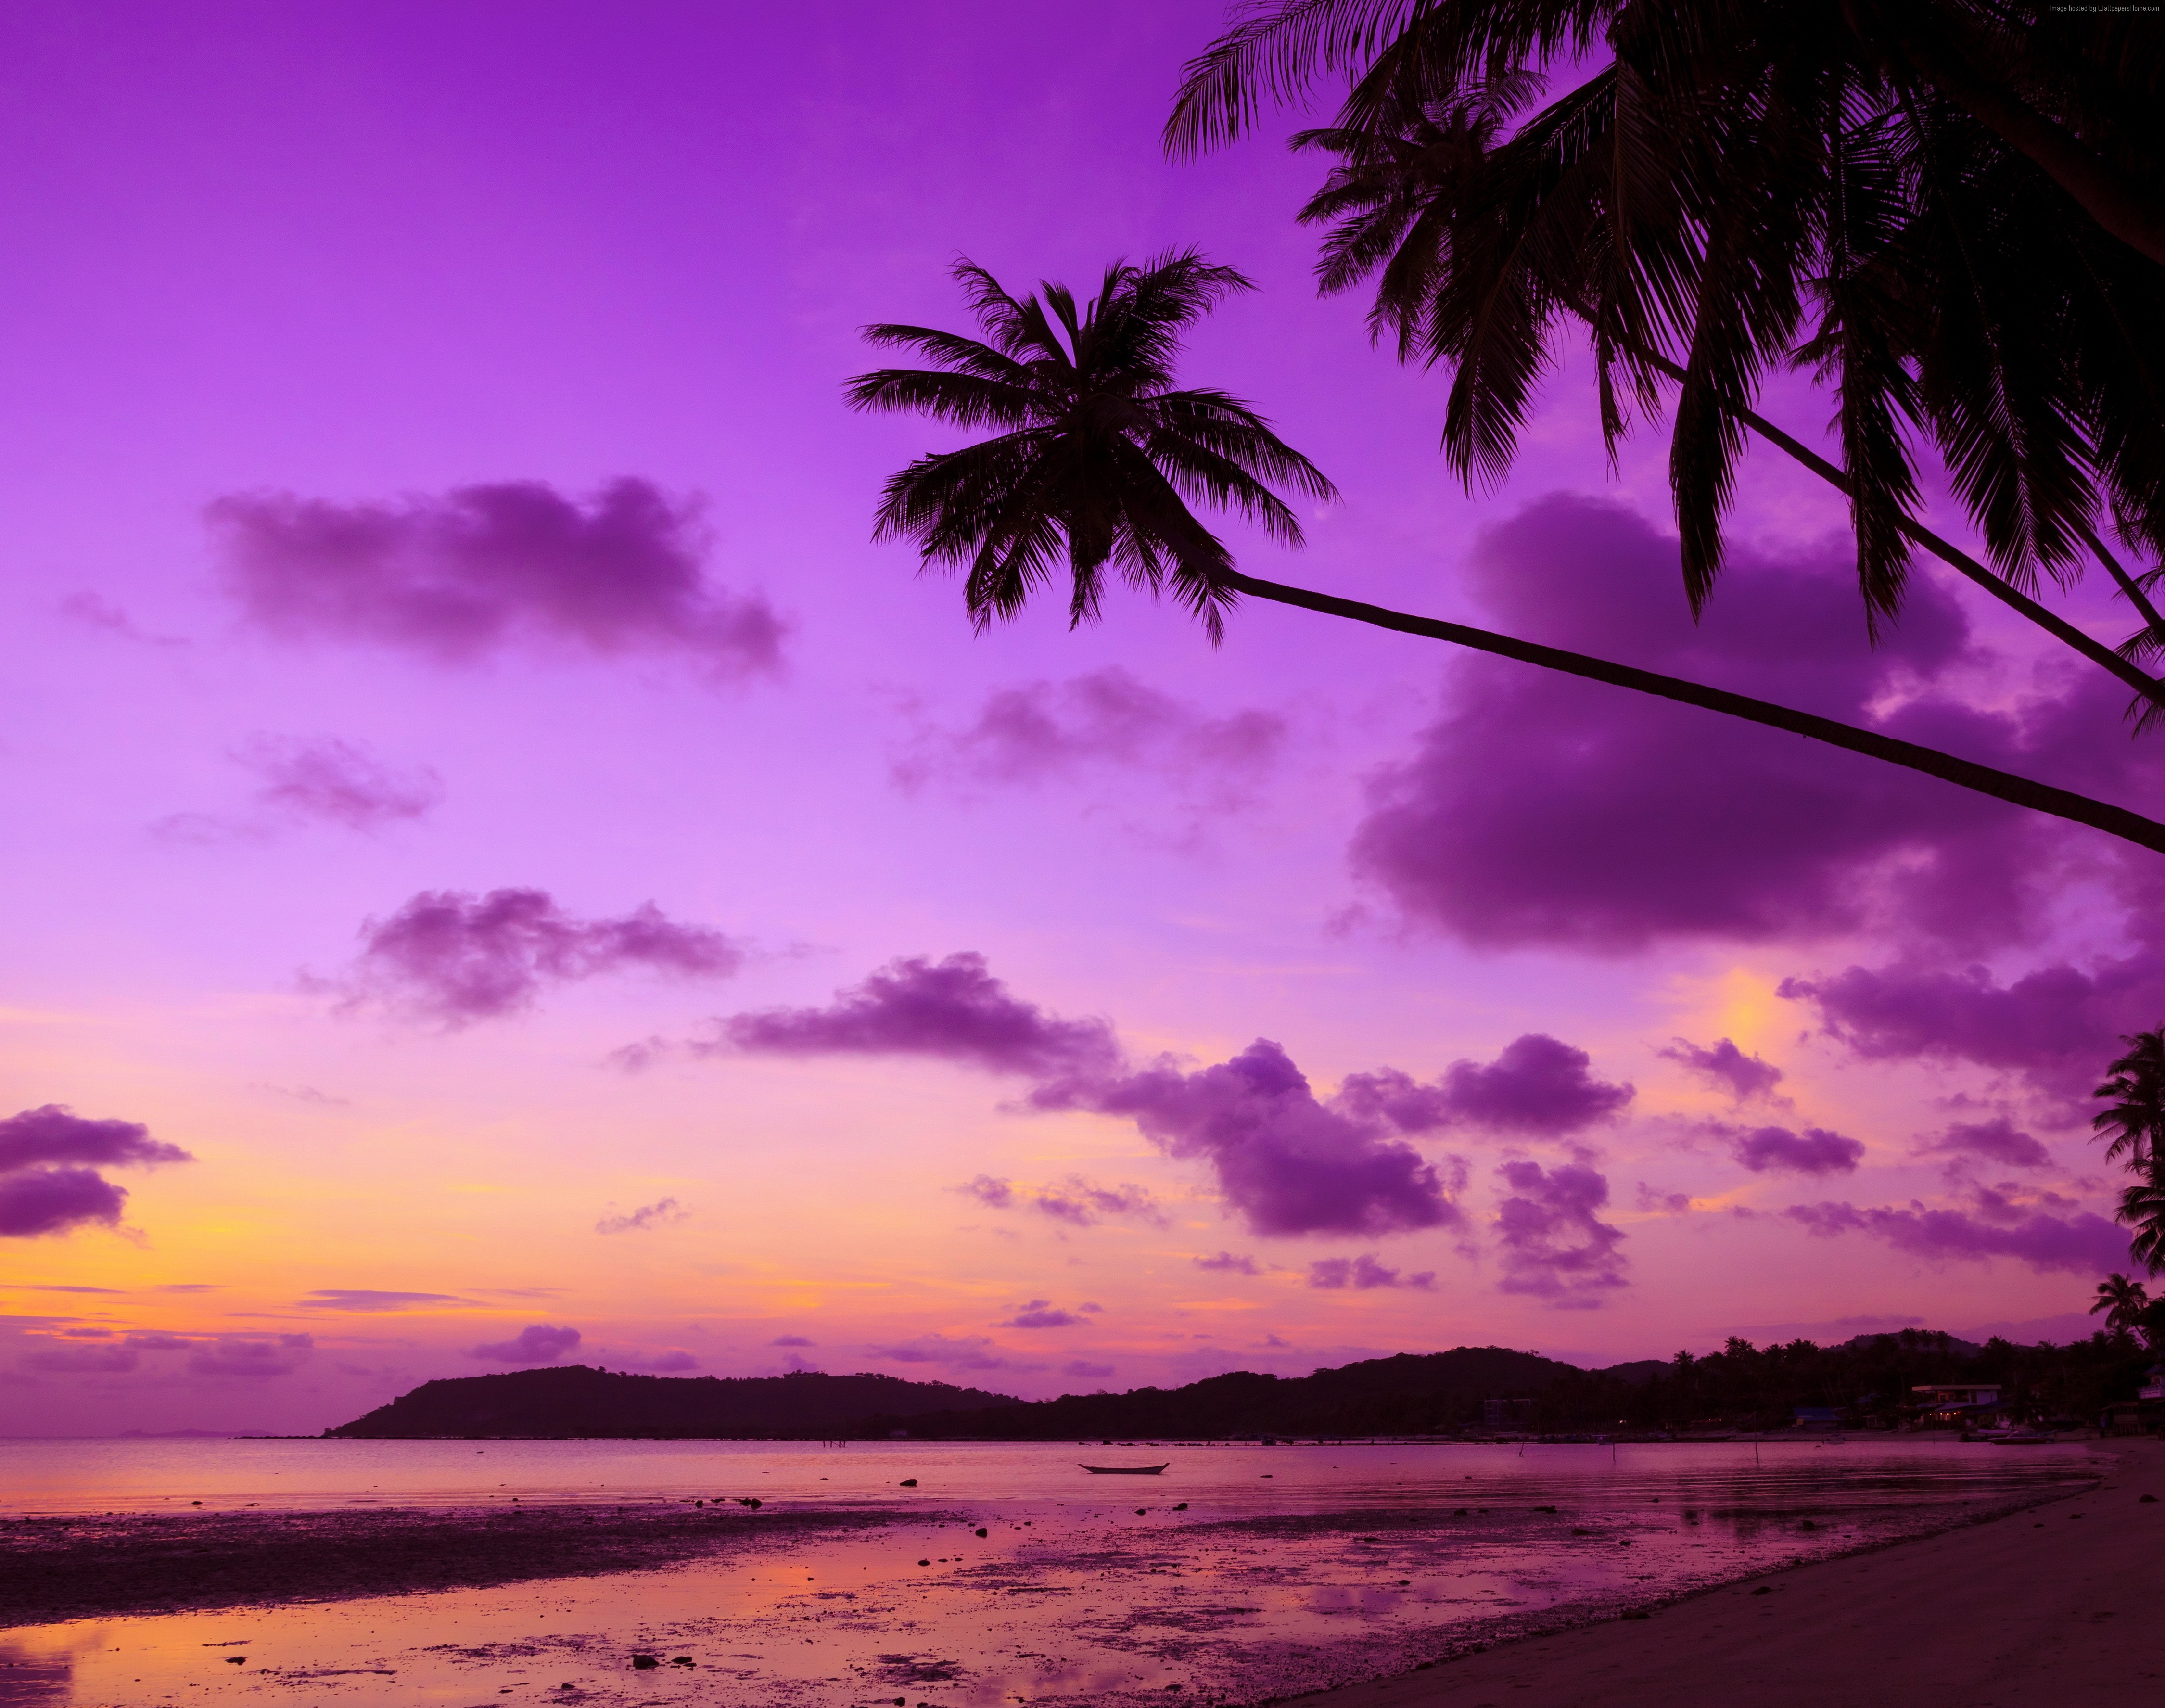 purple palm tree sunset 4k ultra hd wallpaper background